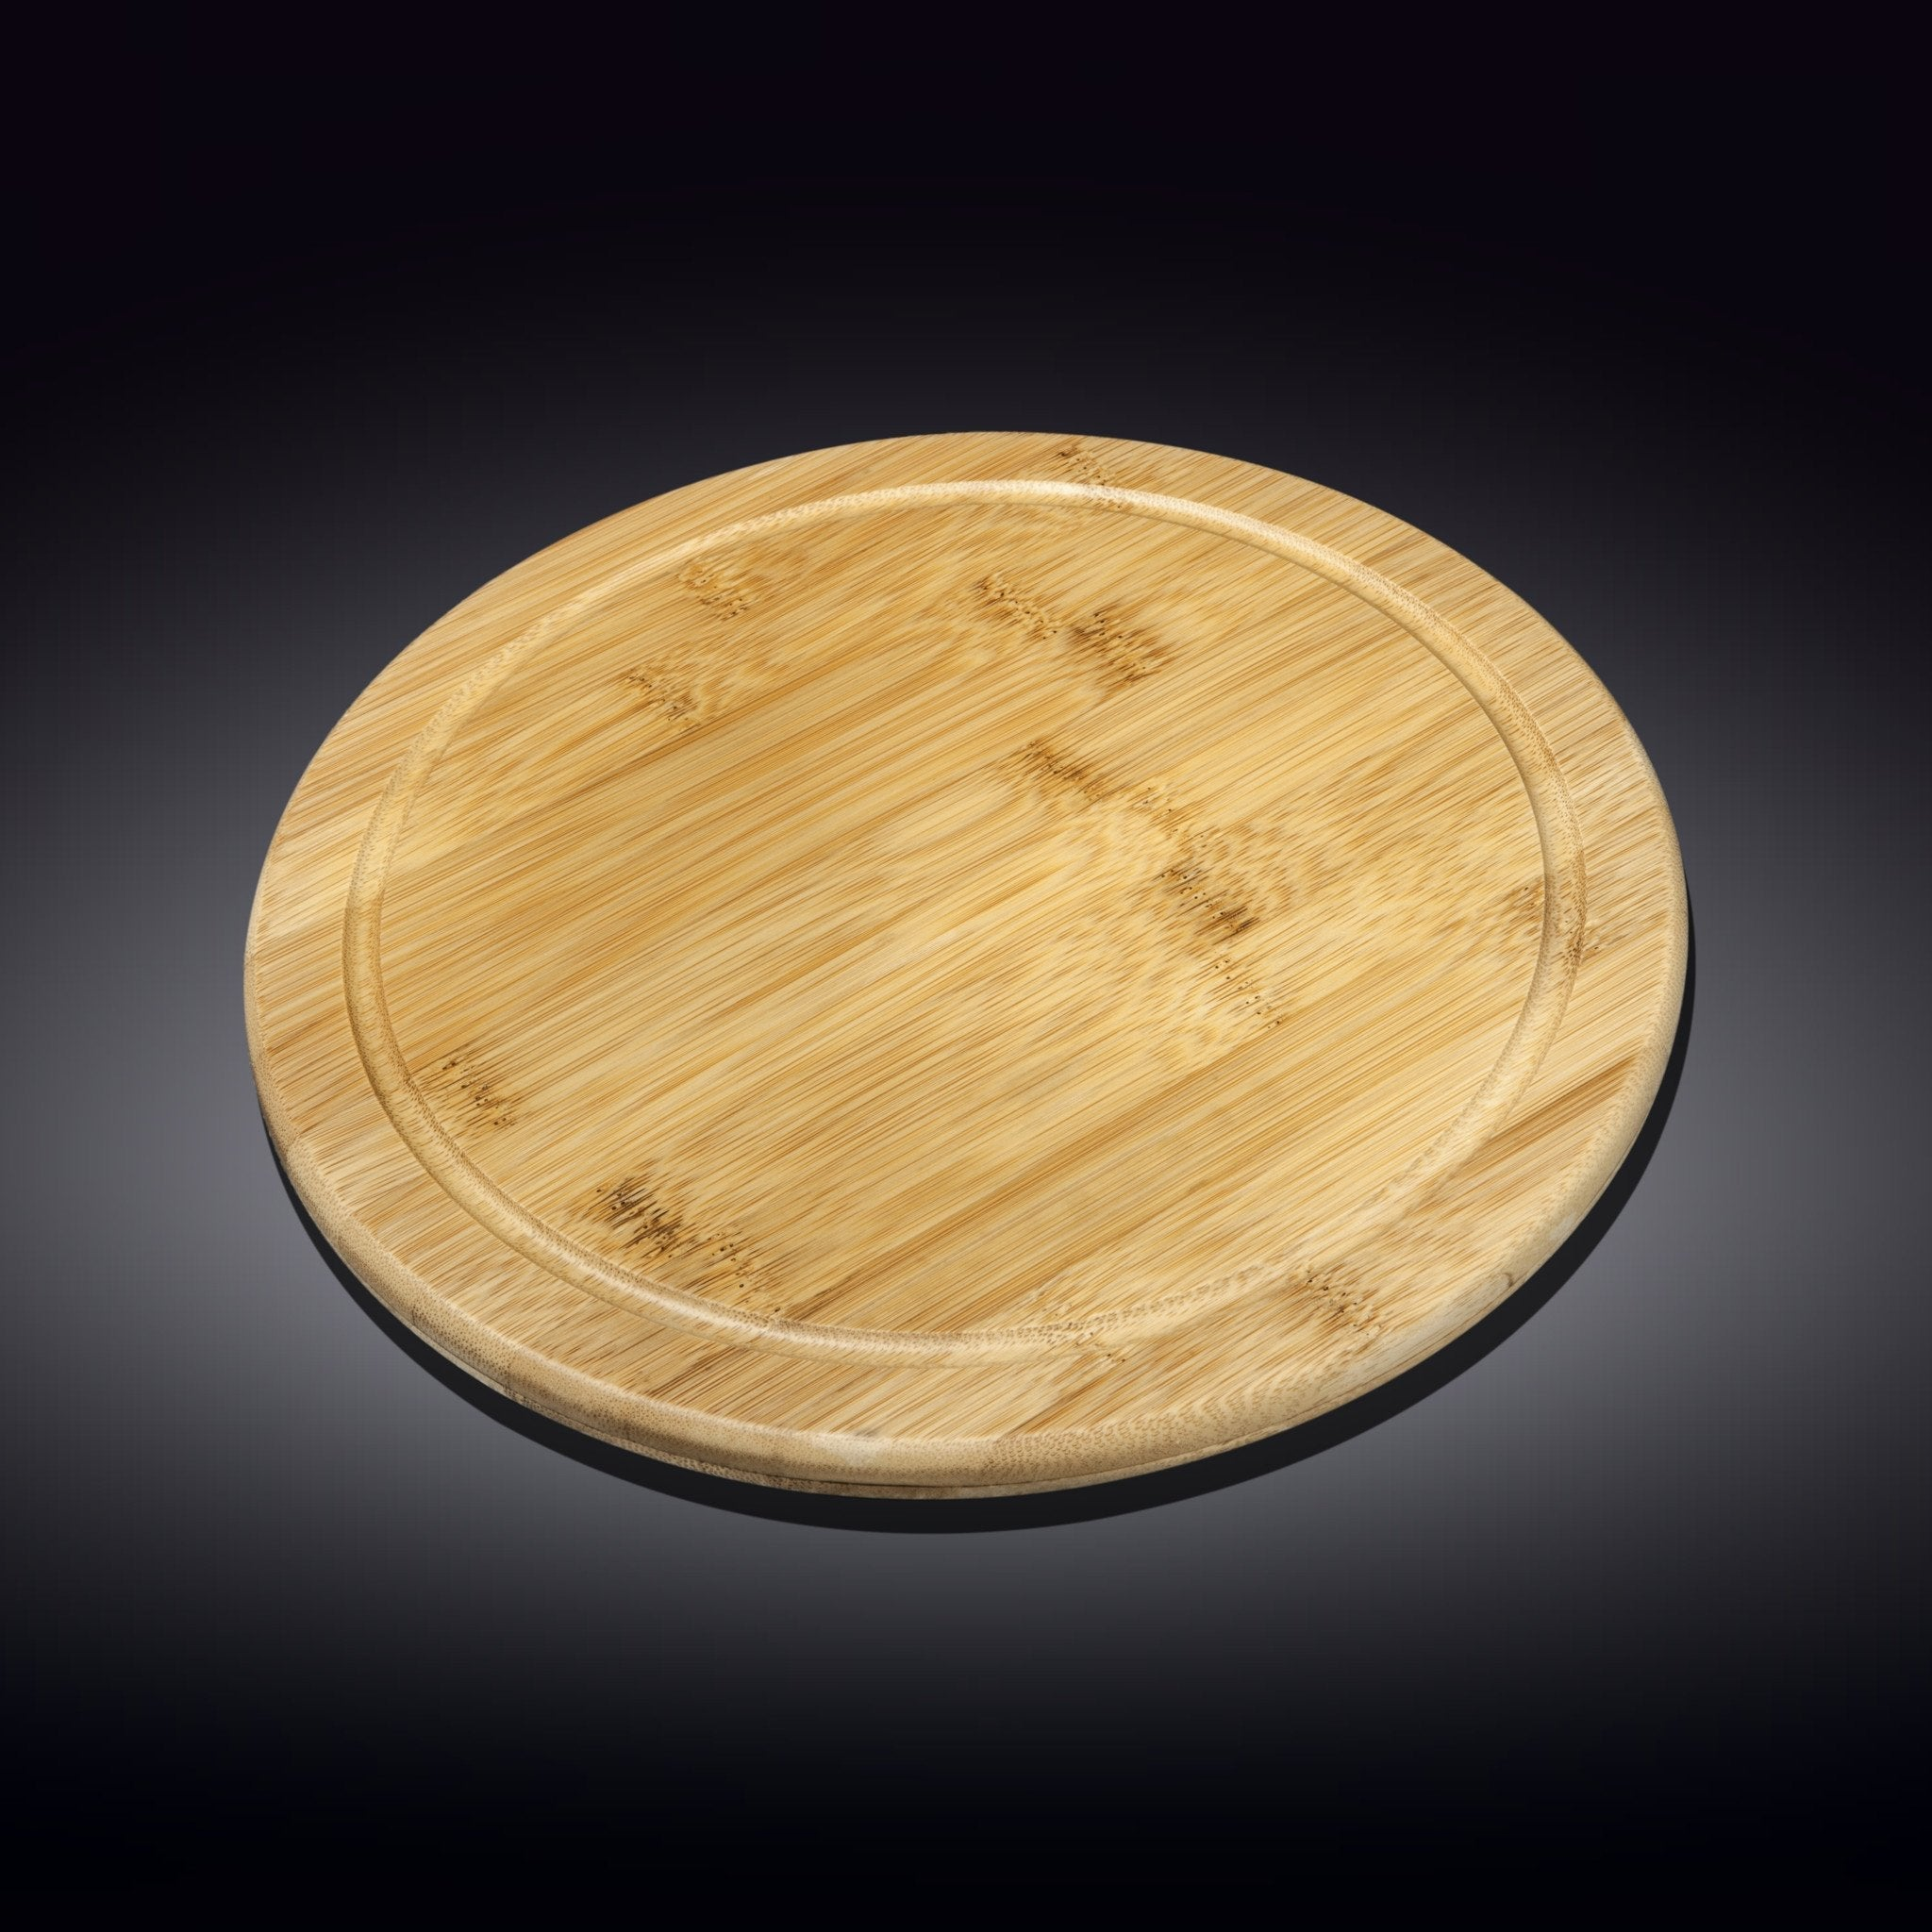 NATURAL BAMBOO SERVING BOARD 12"